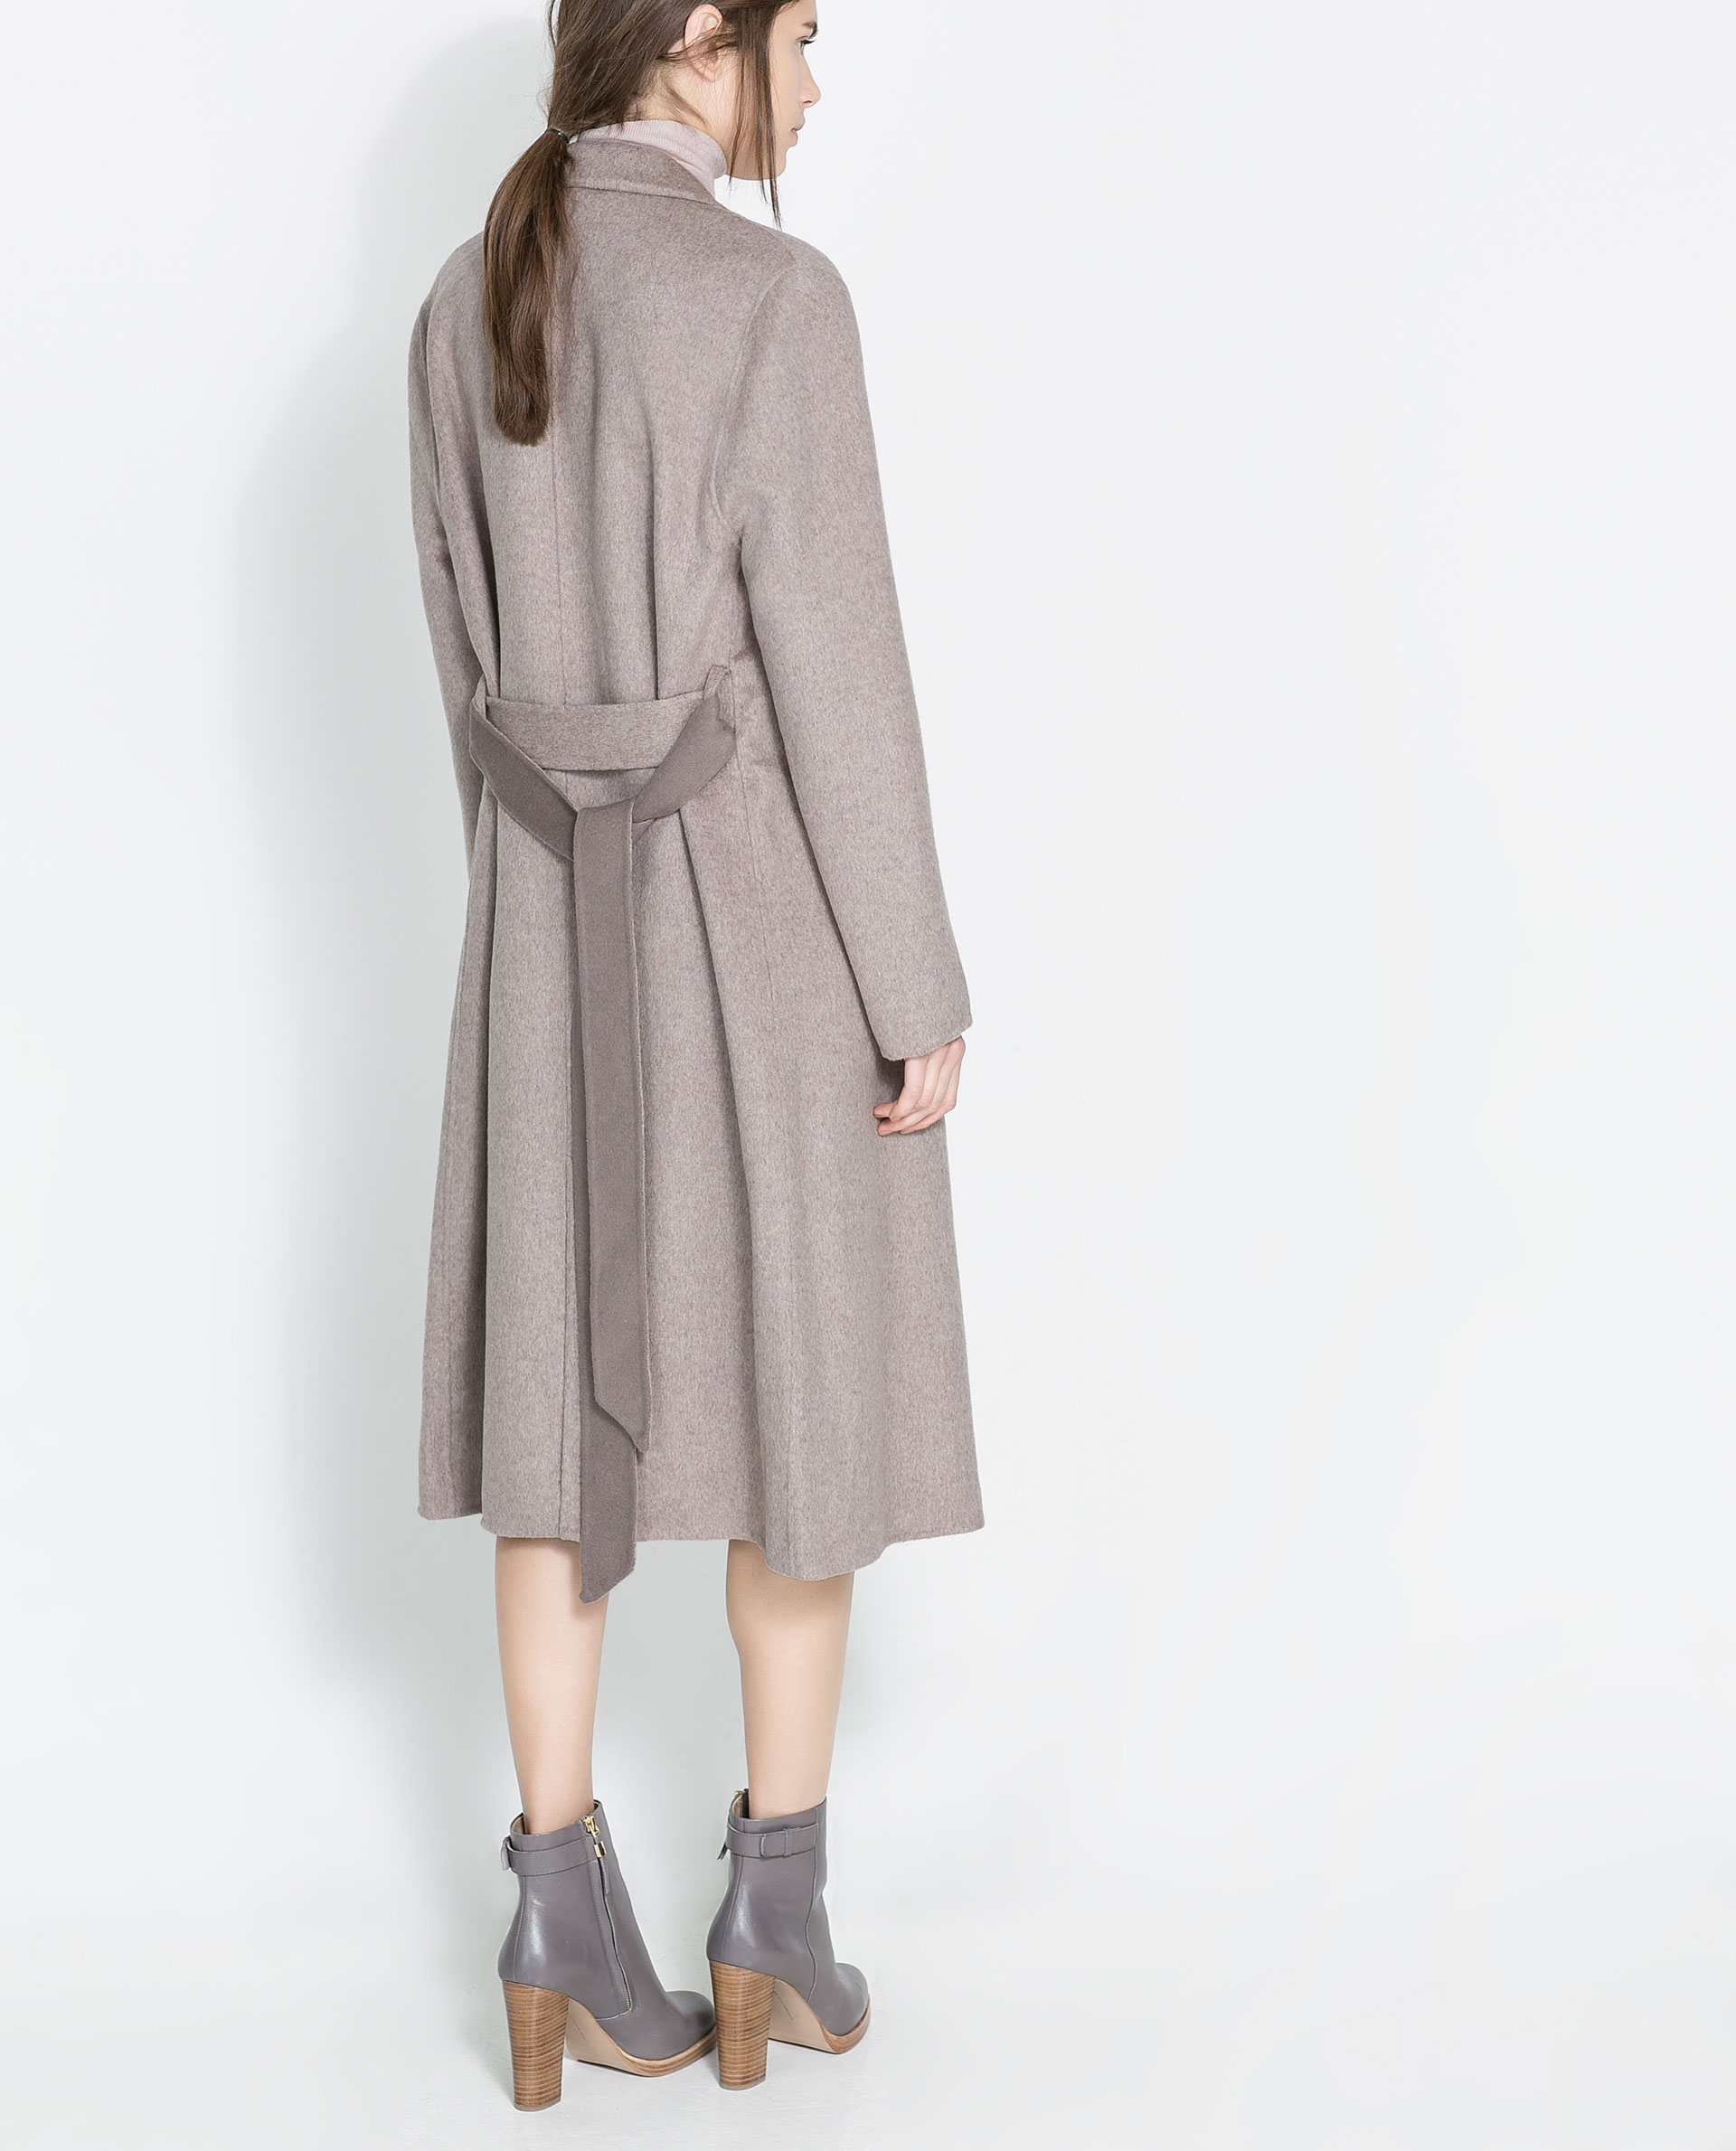 Zara Coat With Lapels And Belt In Gray Lyst